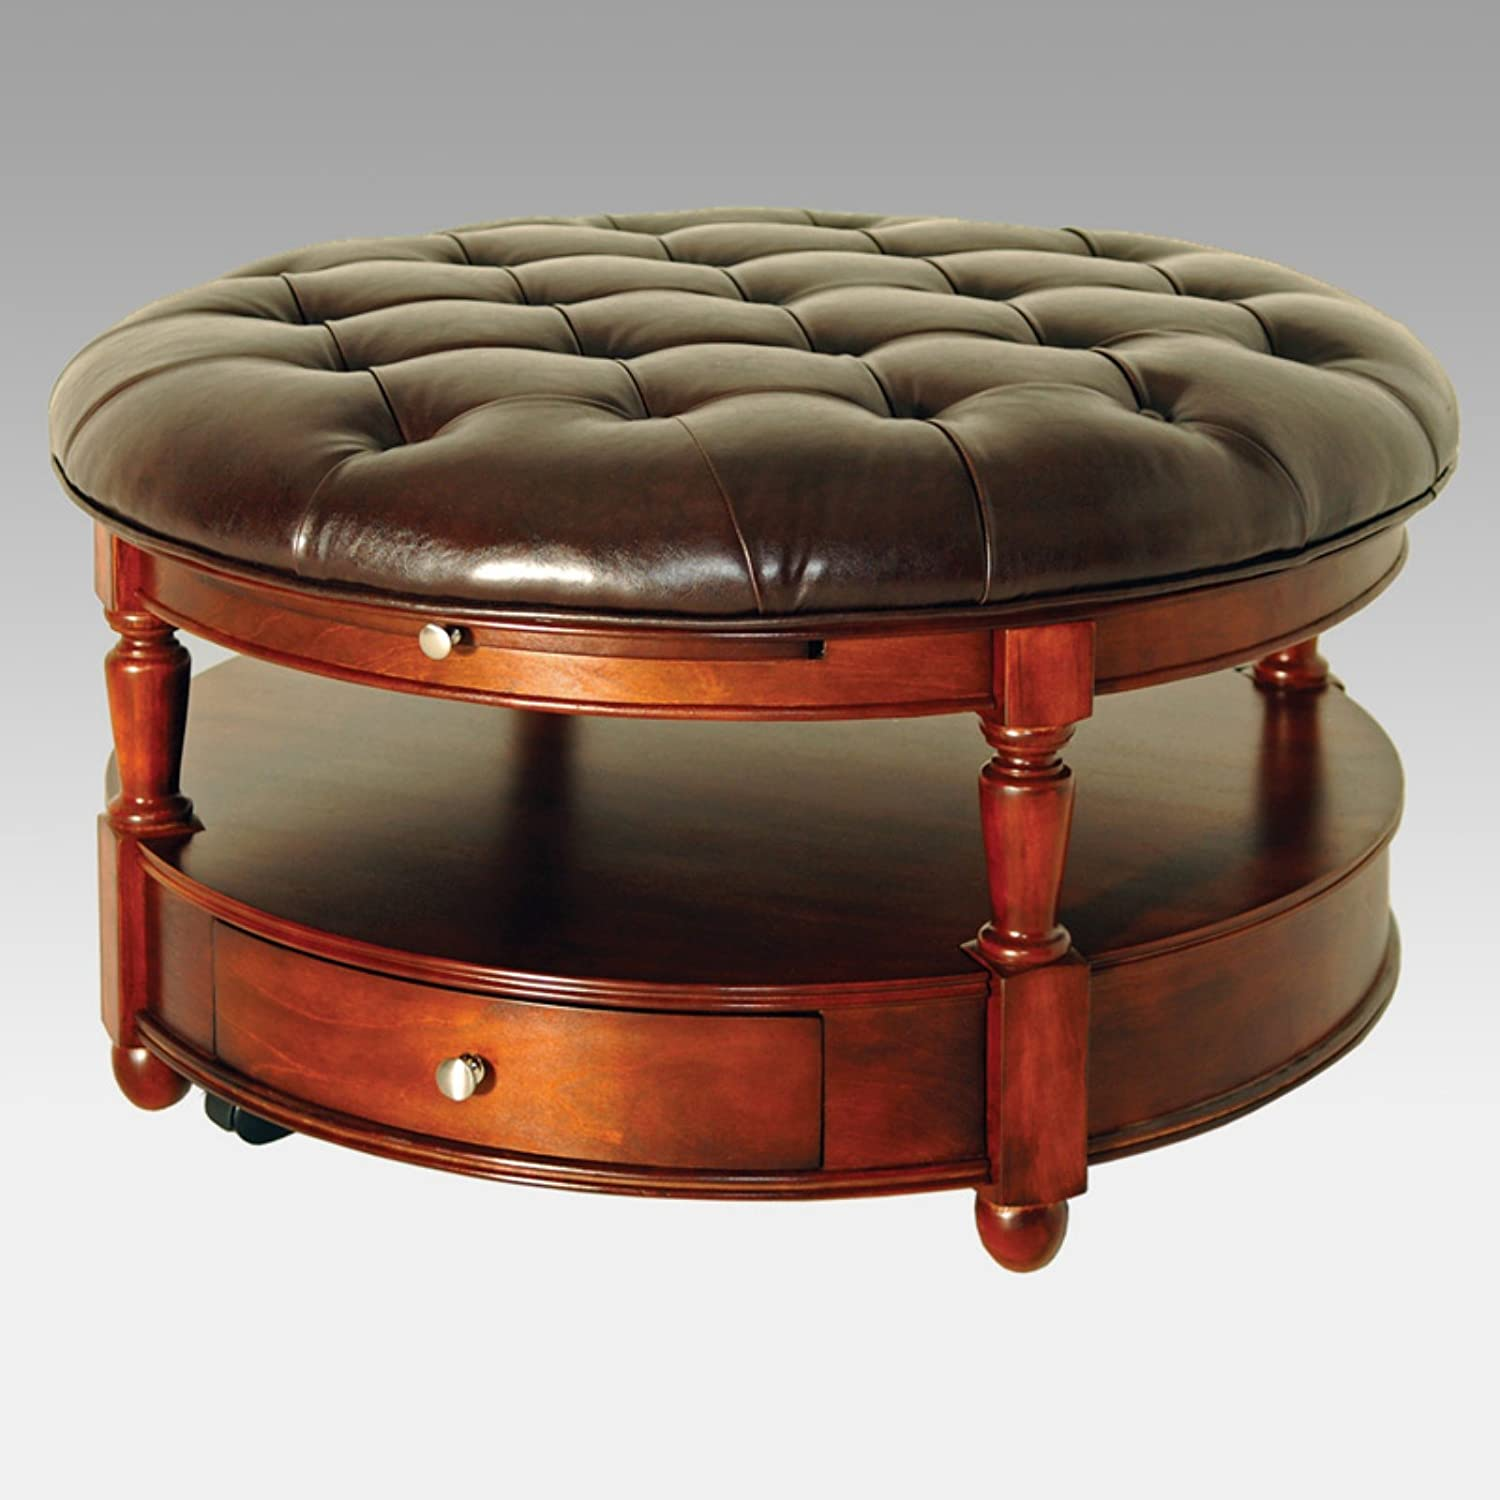 Large Round Tufted Leather Ottomans With Storage ~Olivia's